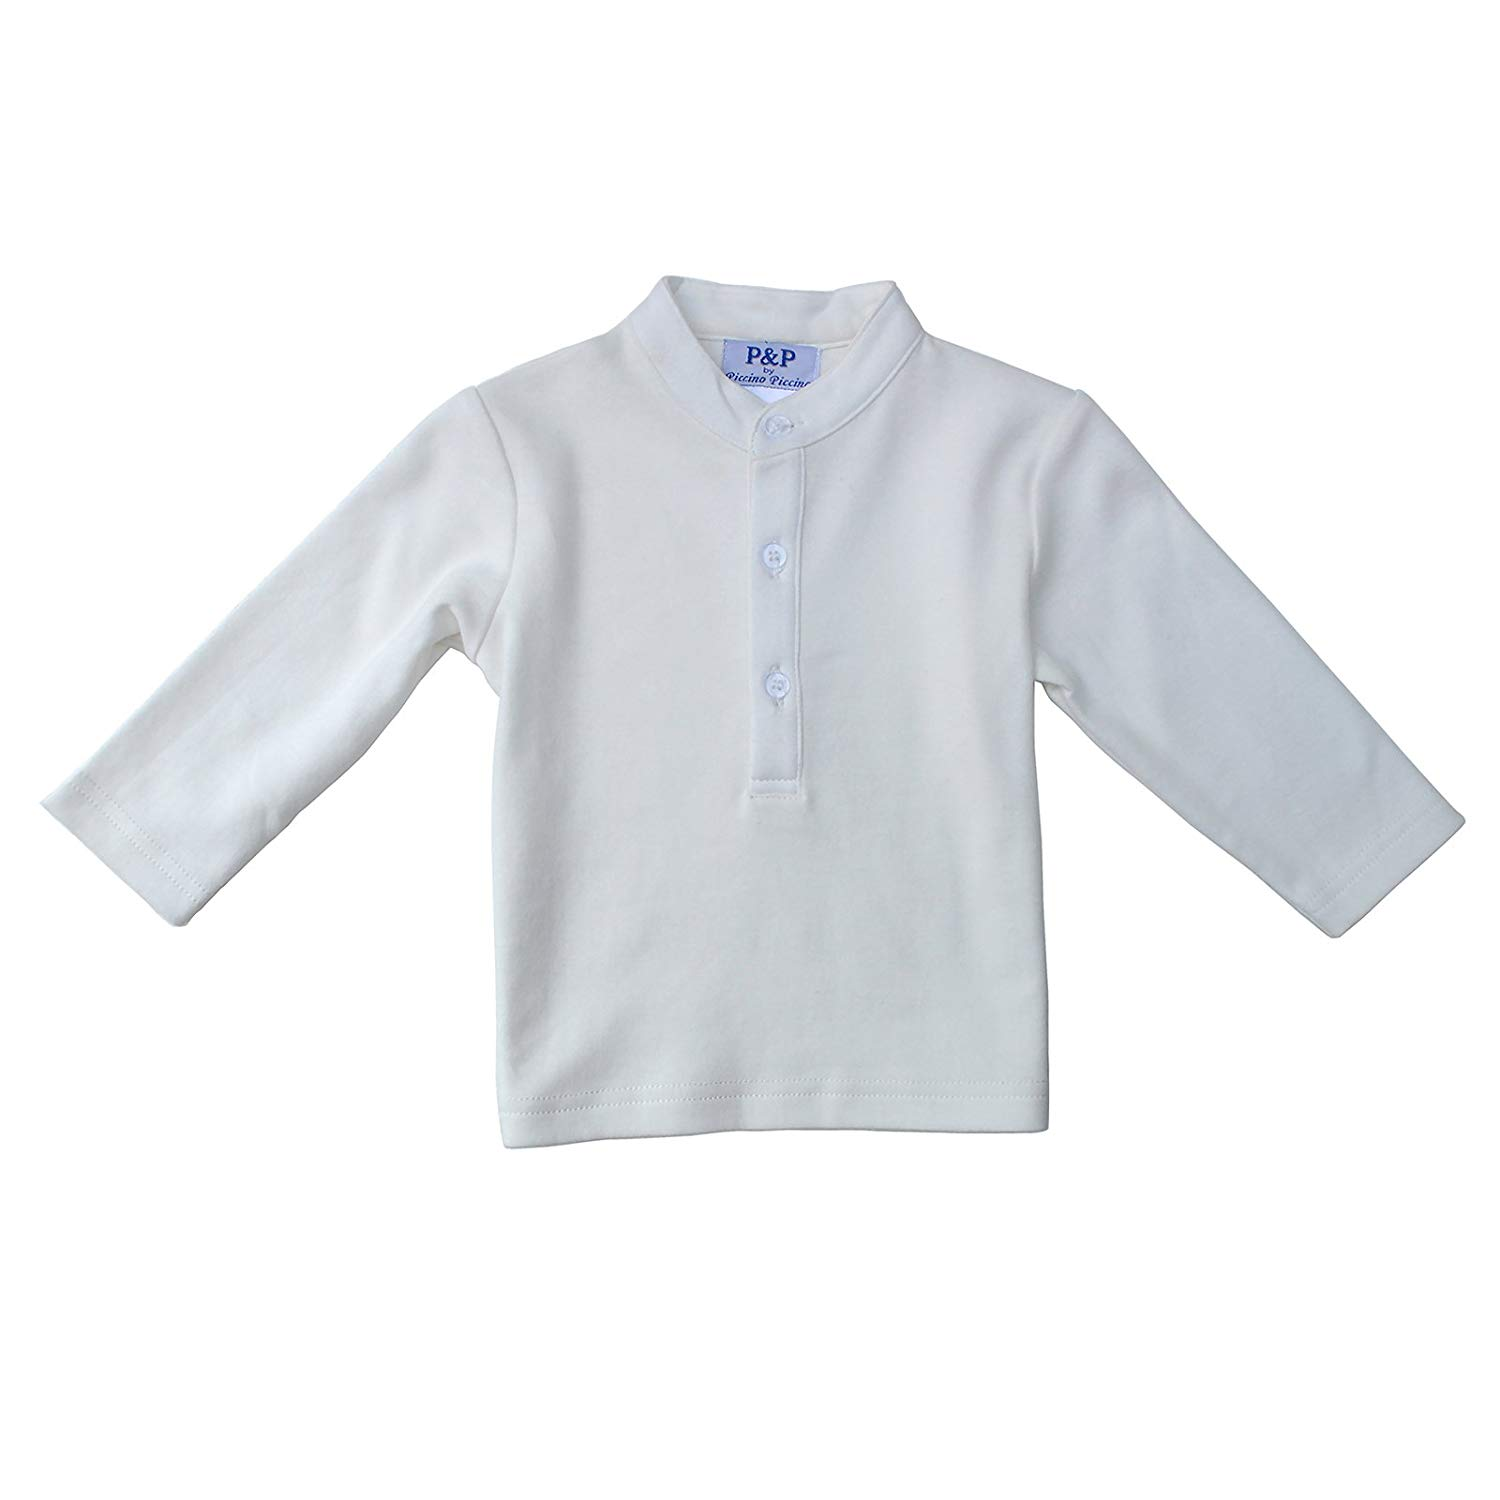 Piccino Piccina Baby Boys Buttoned Shirt - Cream Colored